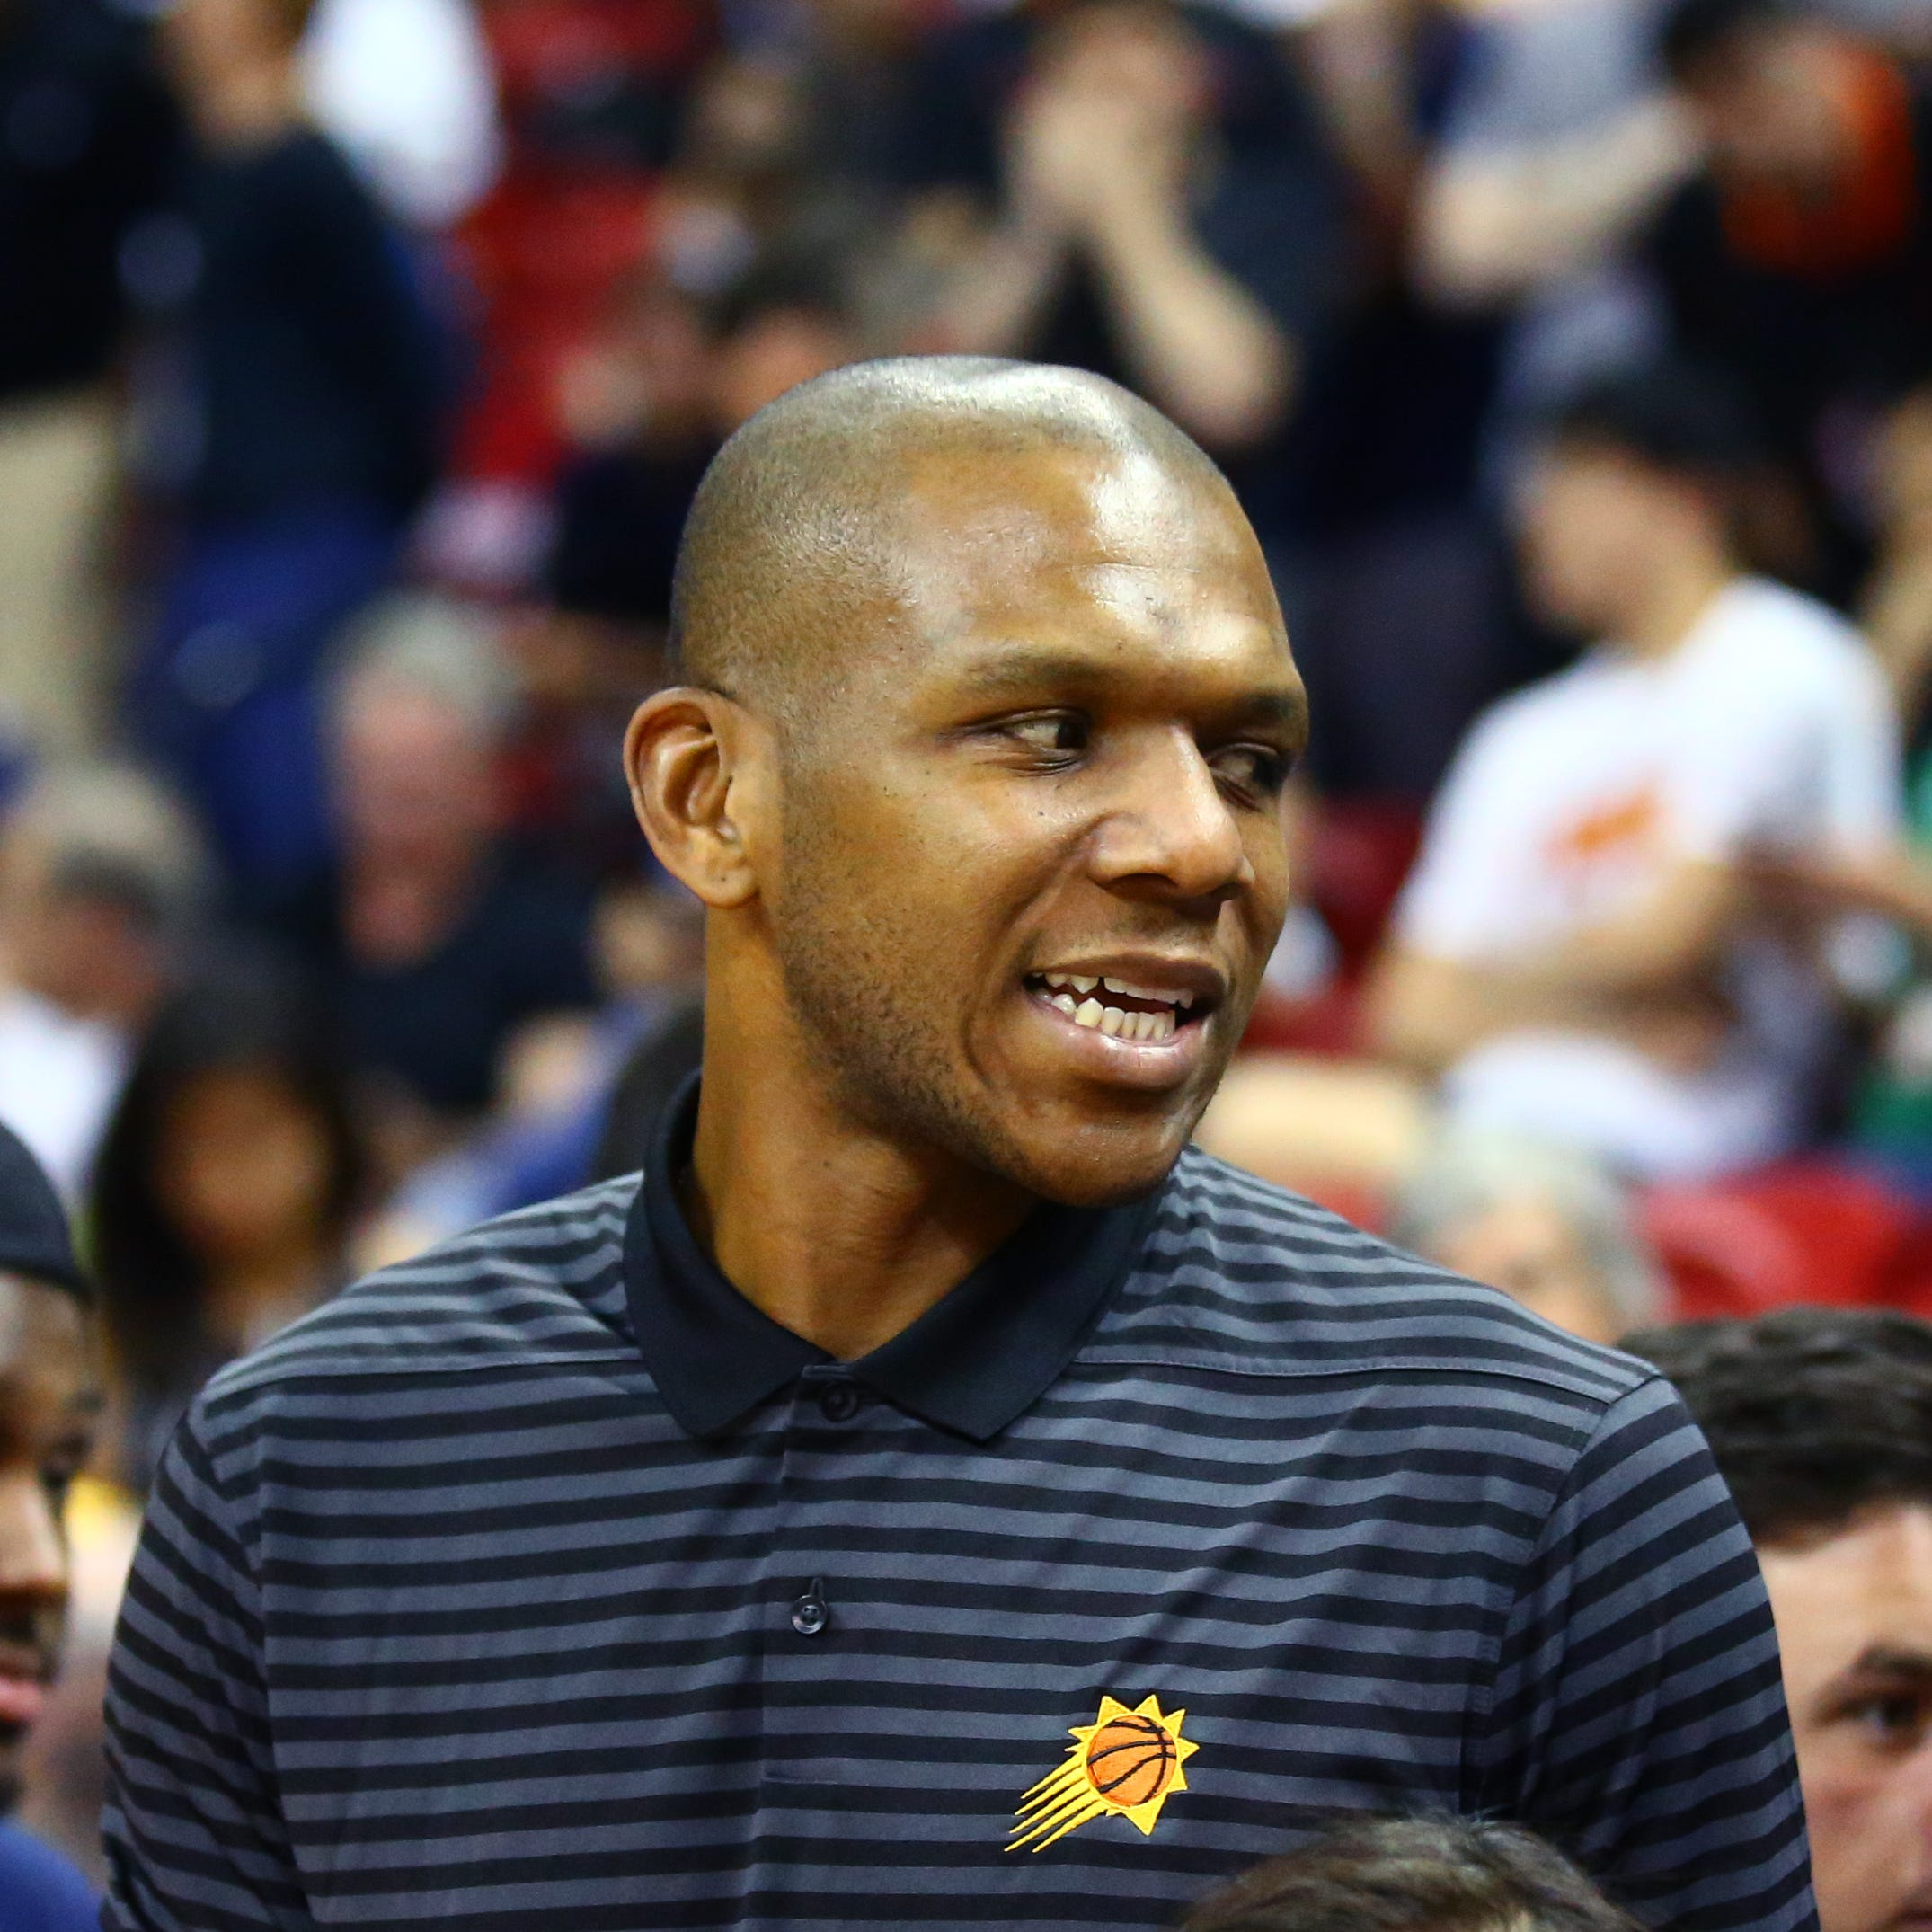 Phoenix Suns commit to James Jones as general manager, add Jeff Bower to front office